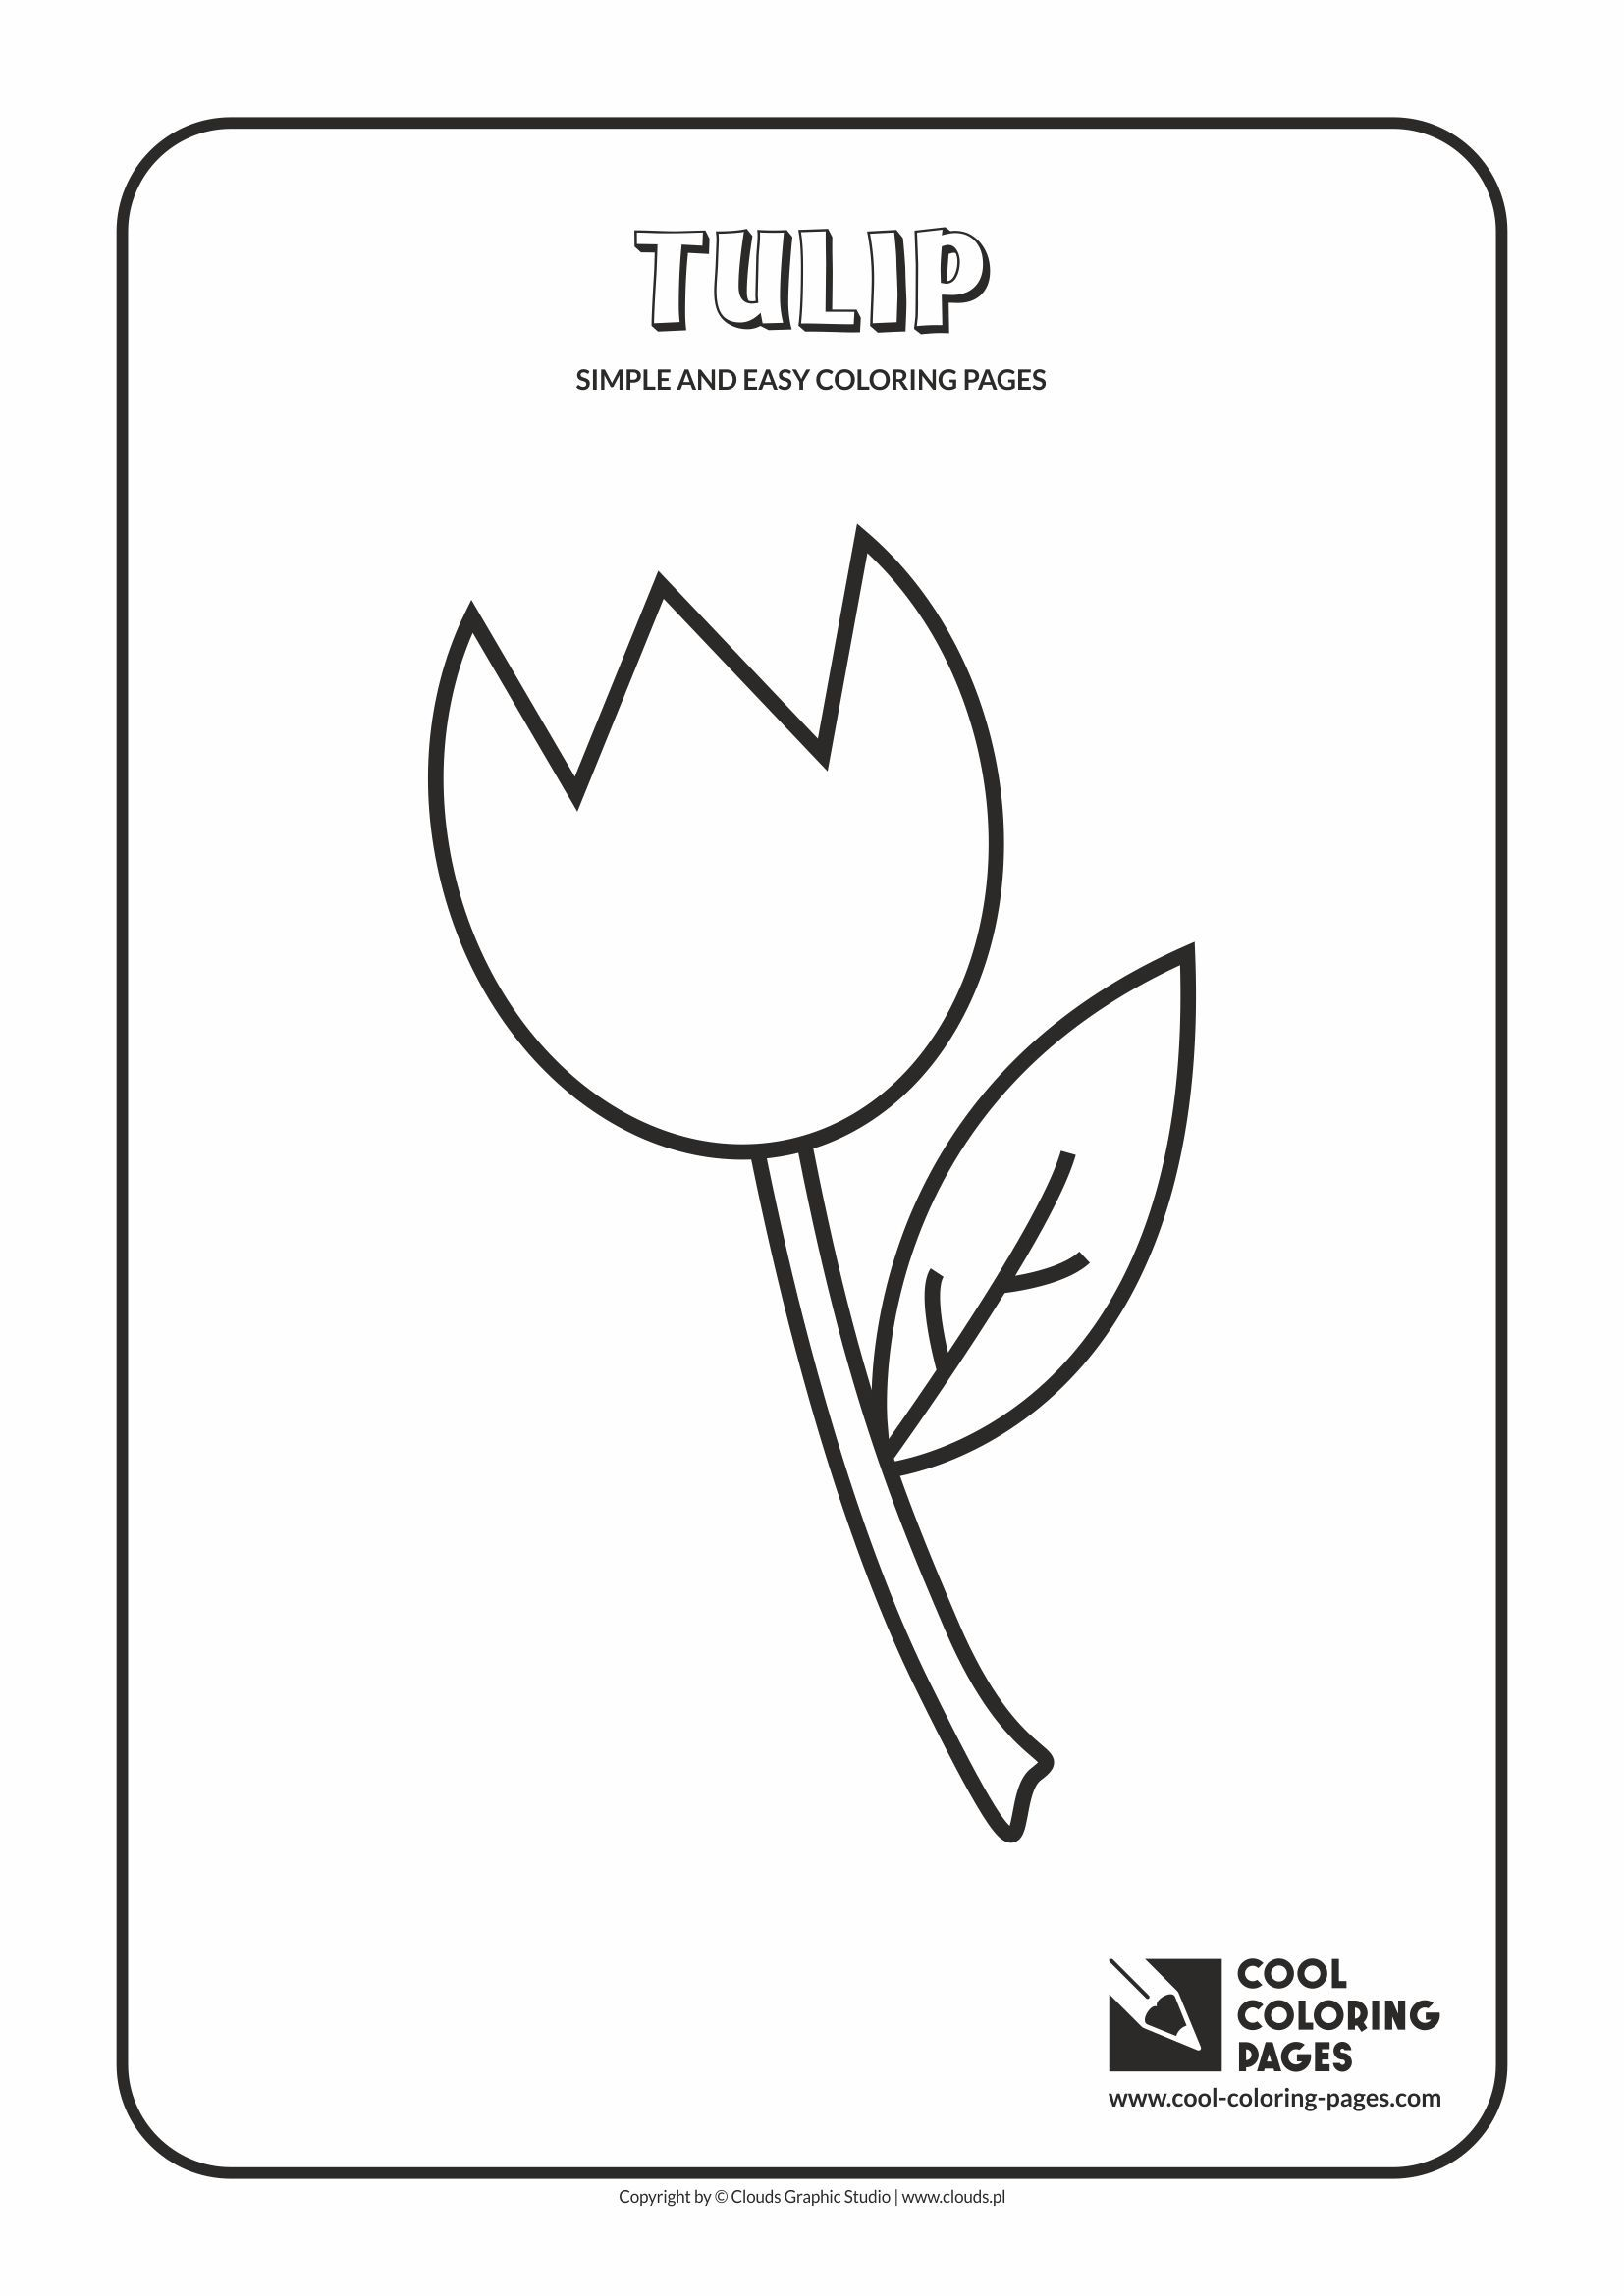 Simple and easy coloring pages for toddlers - Tulip | Simple and ...